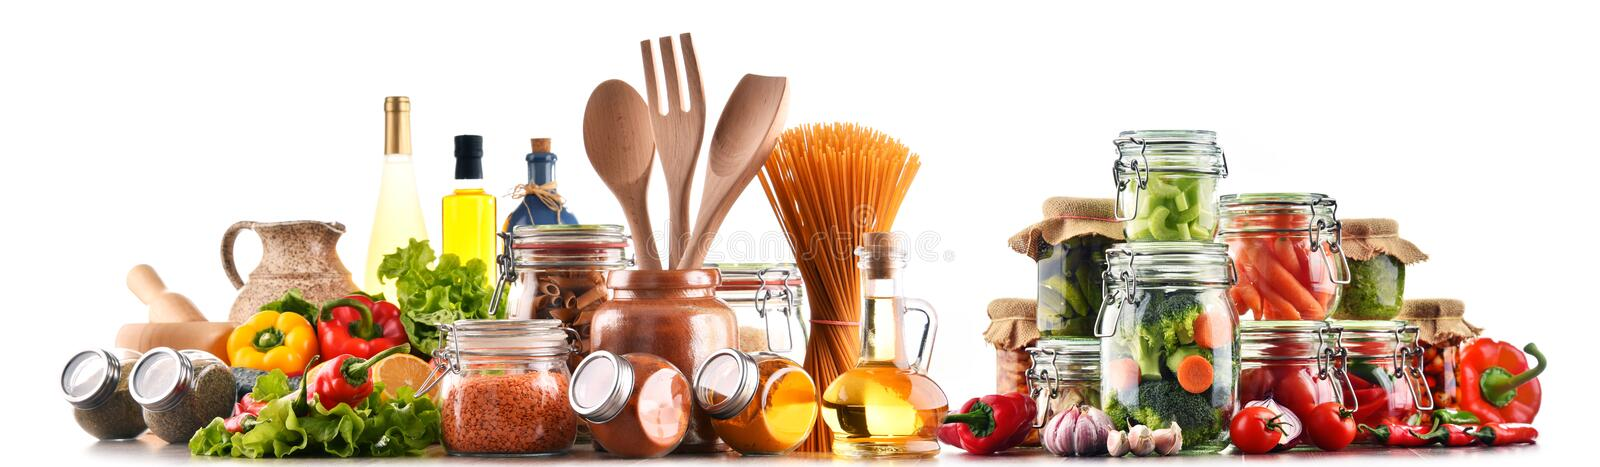 Assorted food products and kitchen utensils isolated on white. Background stock photography